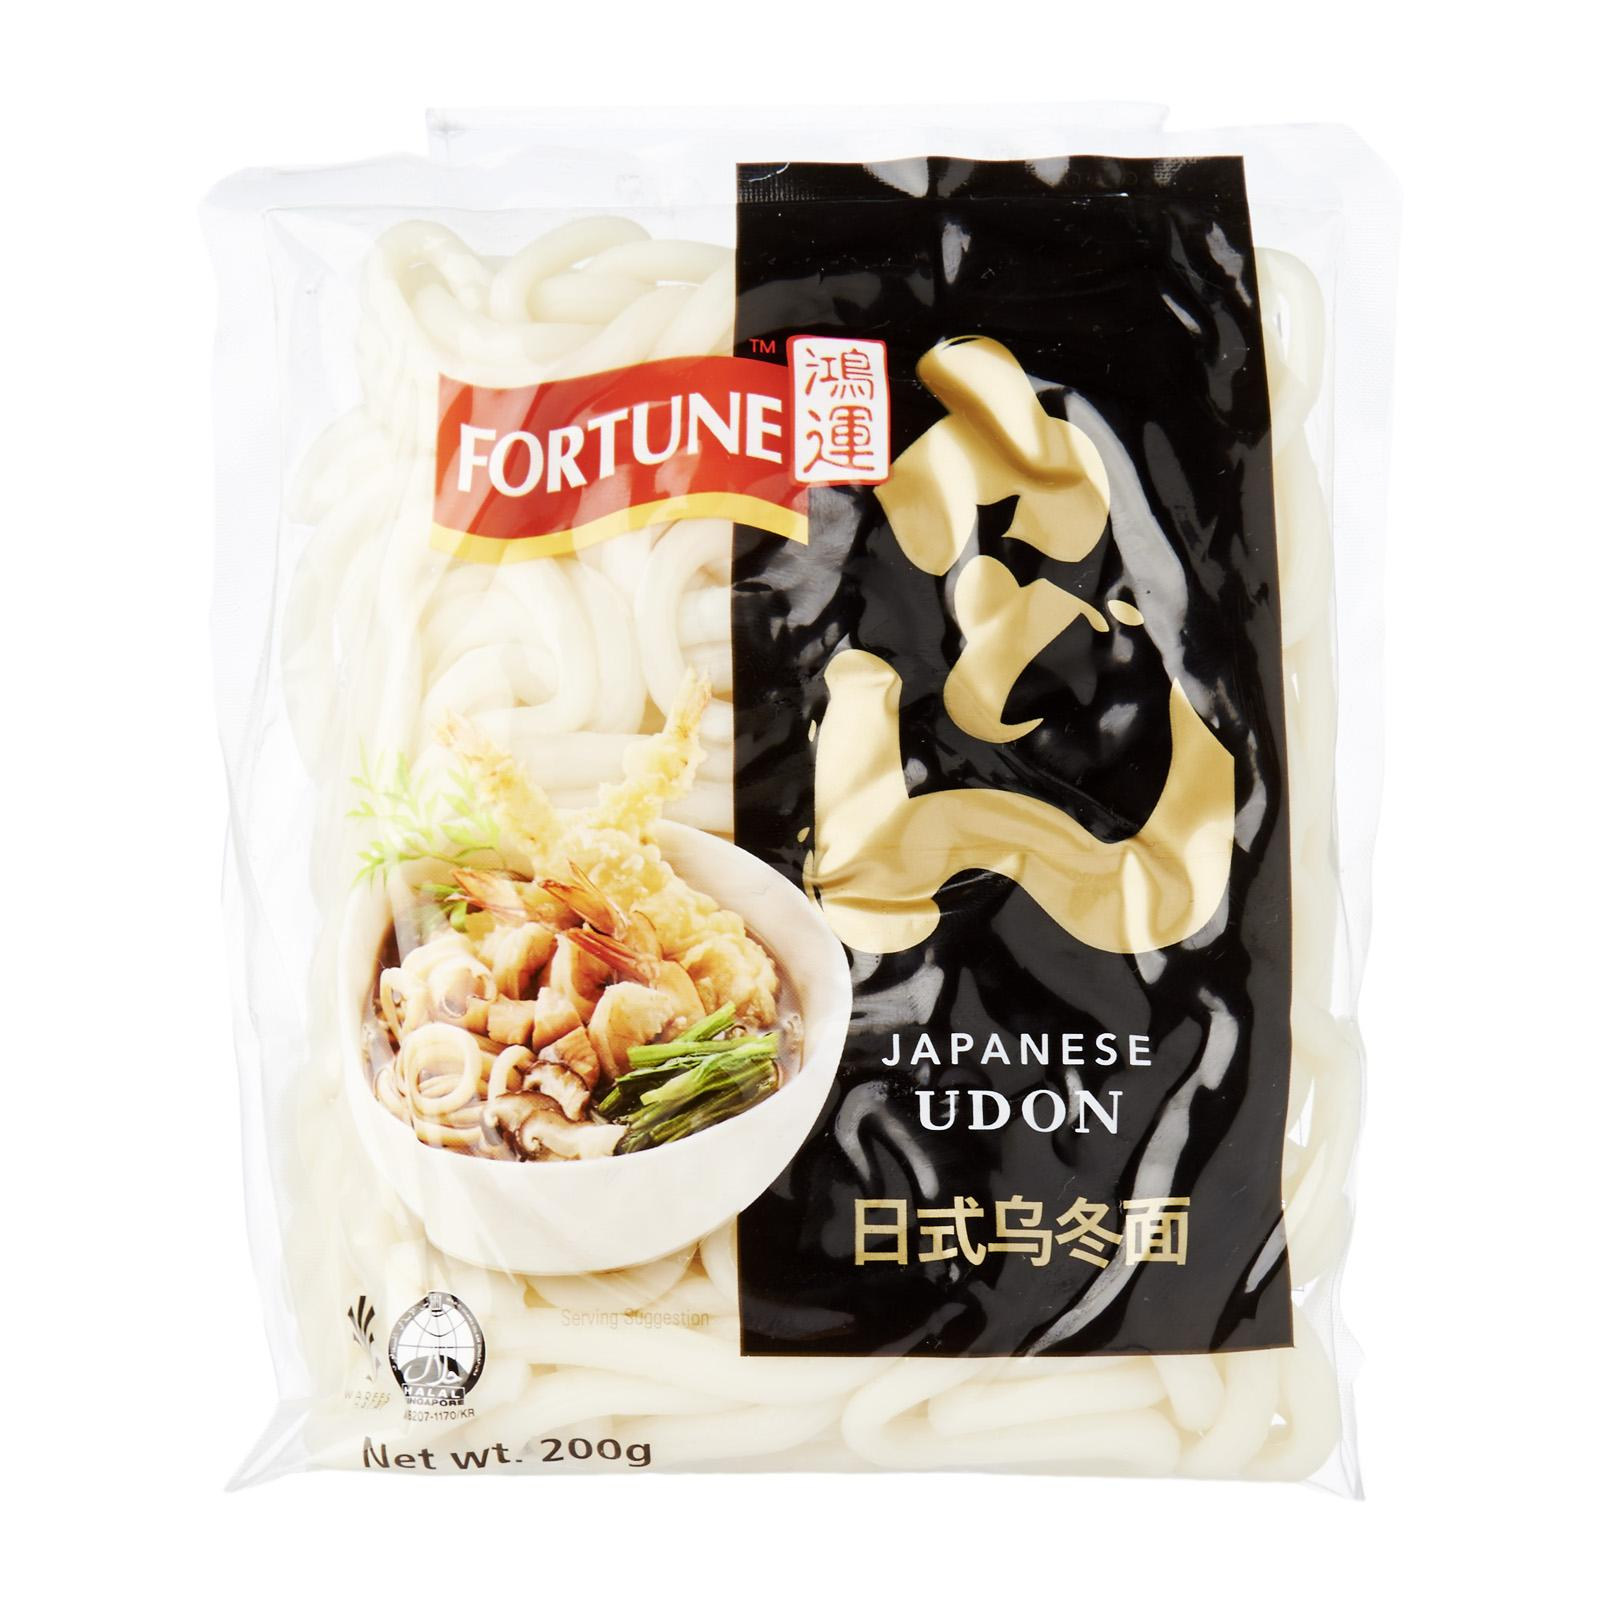 Fortune Japanese Udon